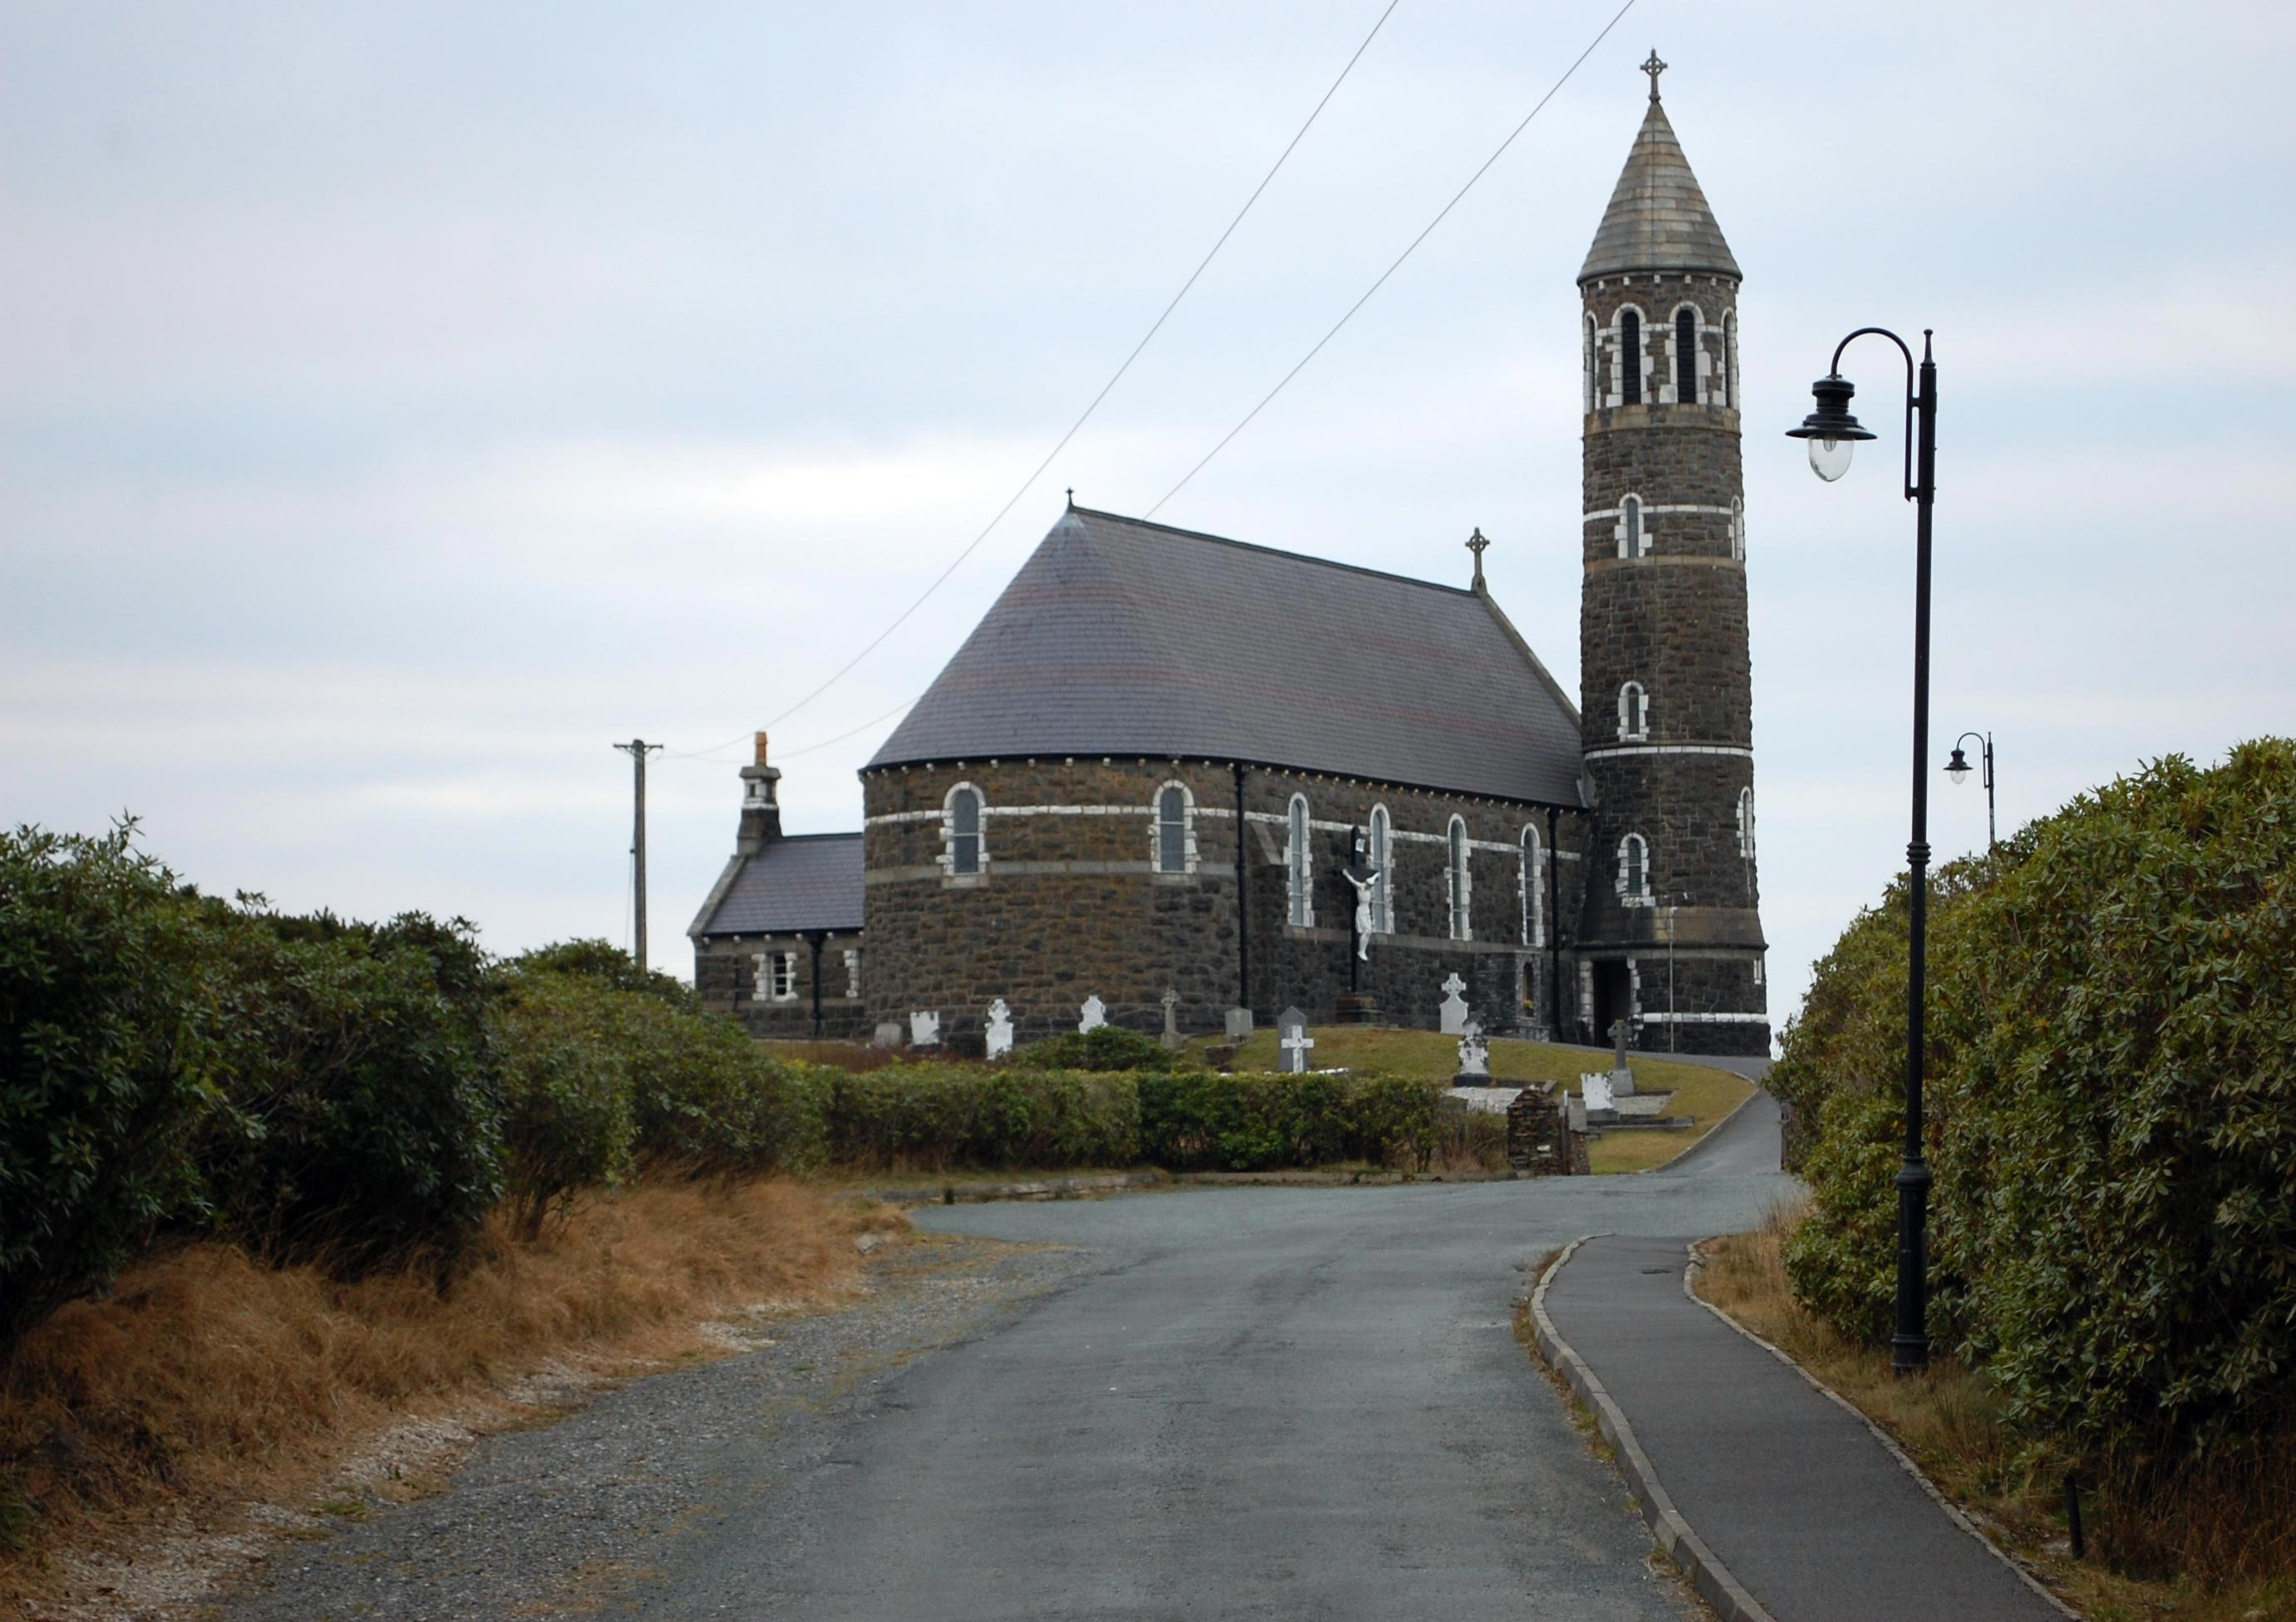 Facts About Ireland - Image of Church in Ireland